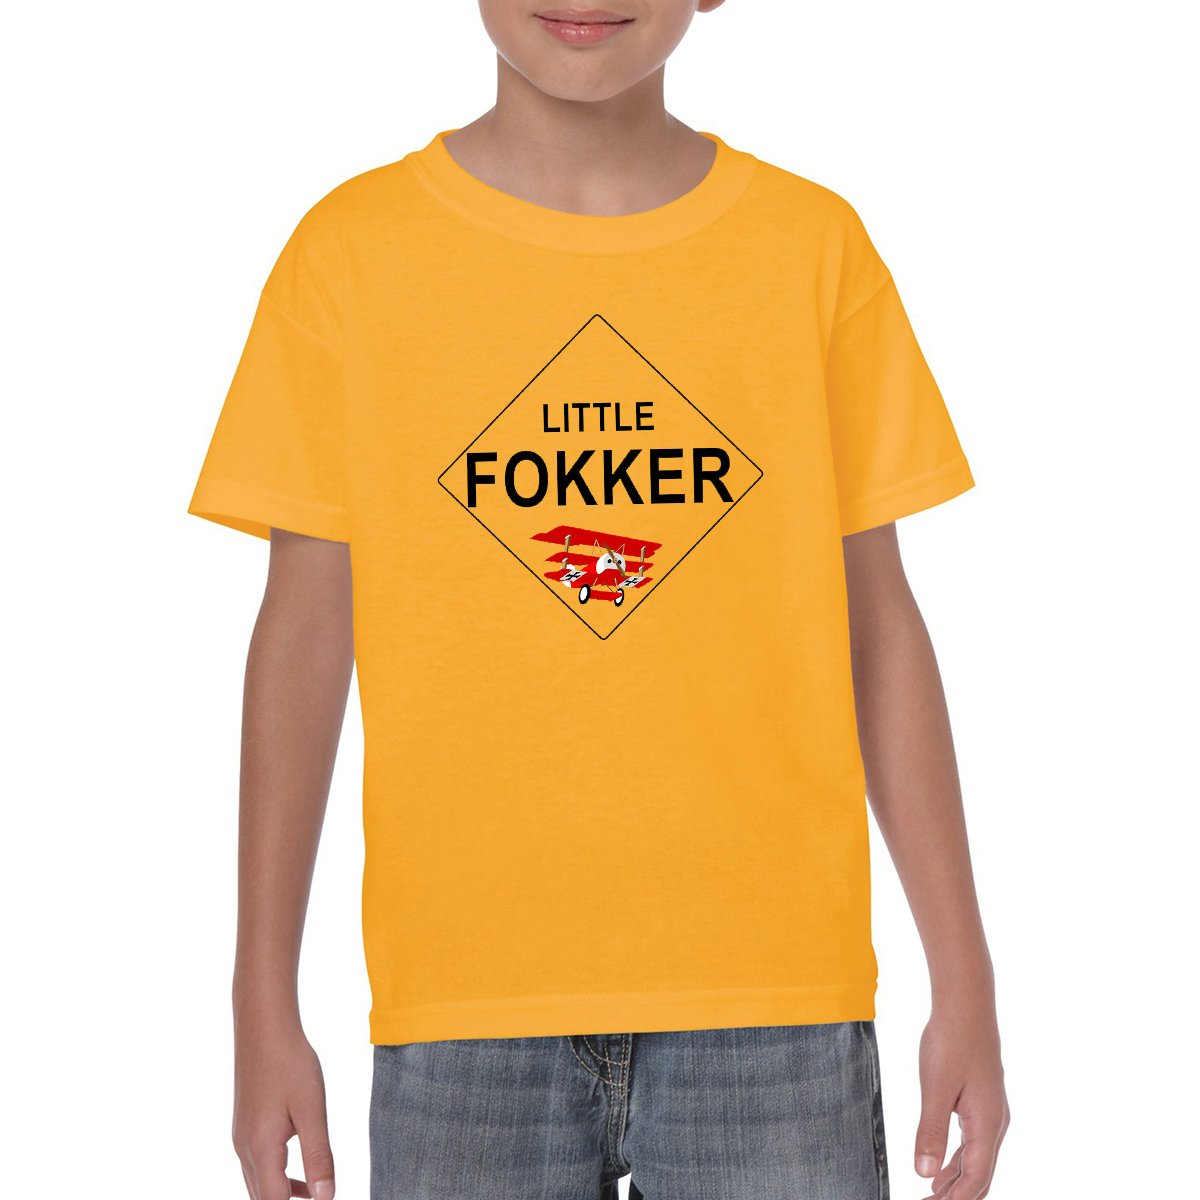 LITTLE FOKKER Youth Semi-Fitted T-Shirt